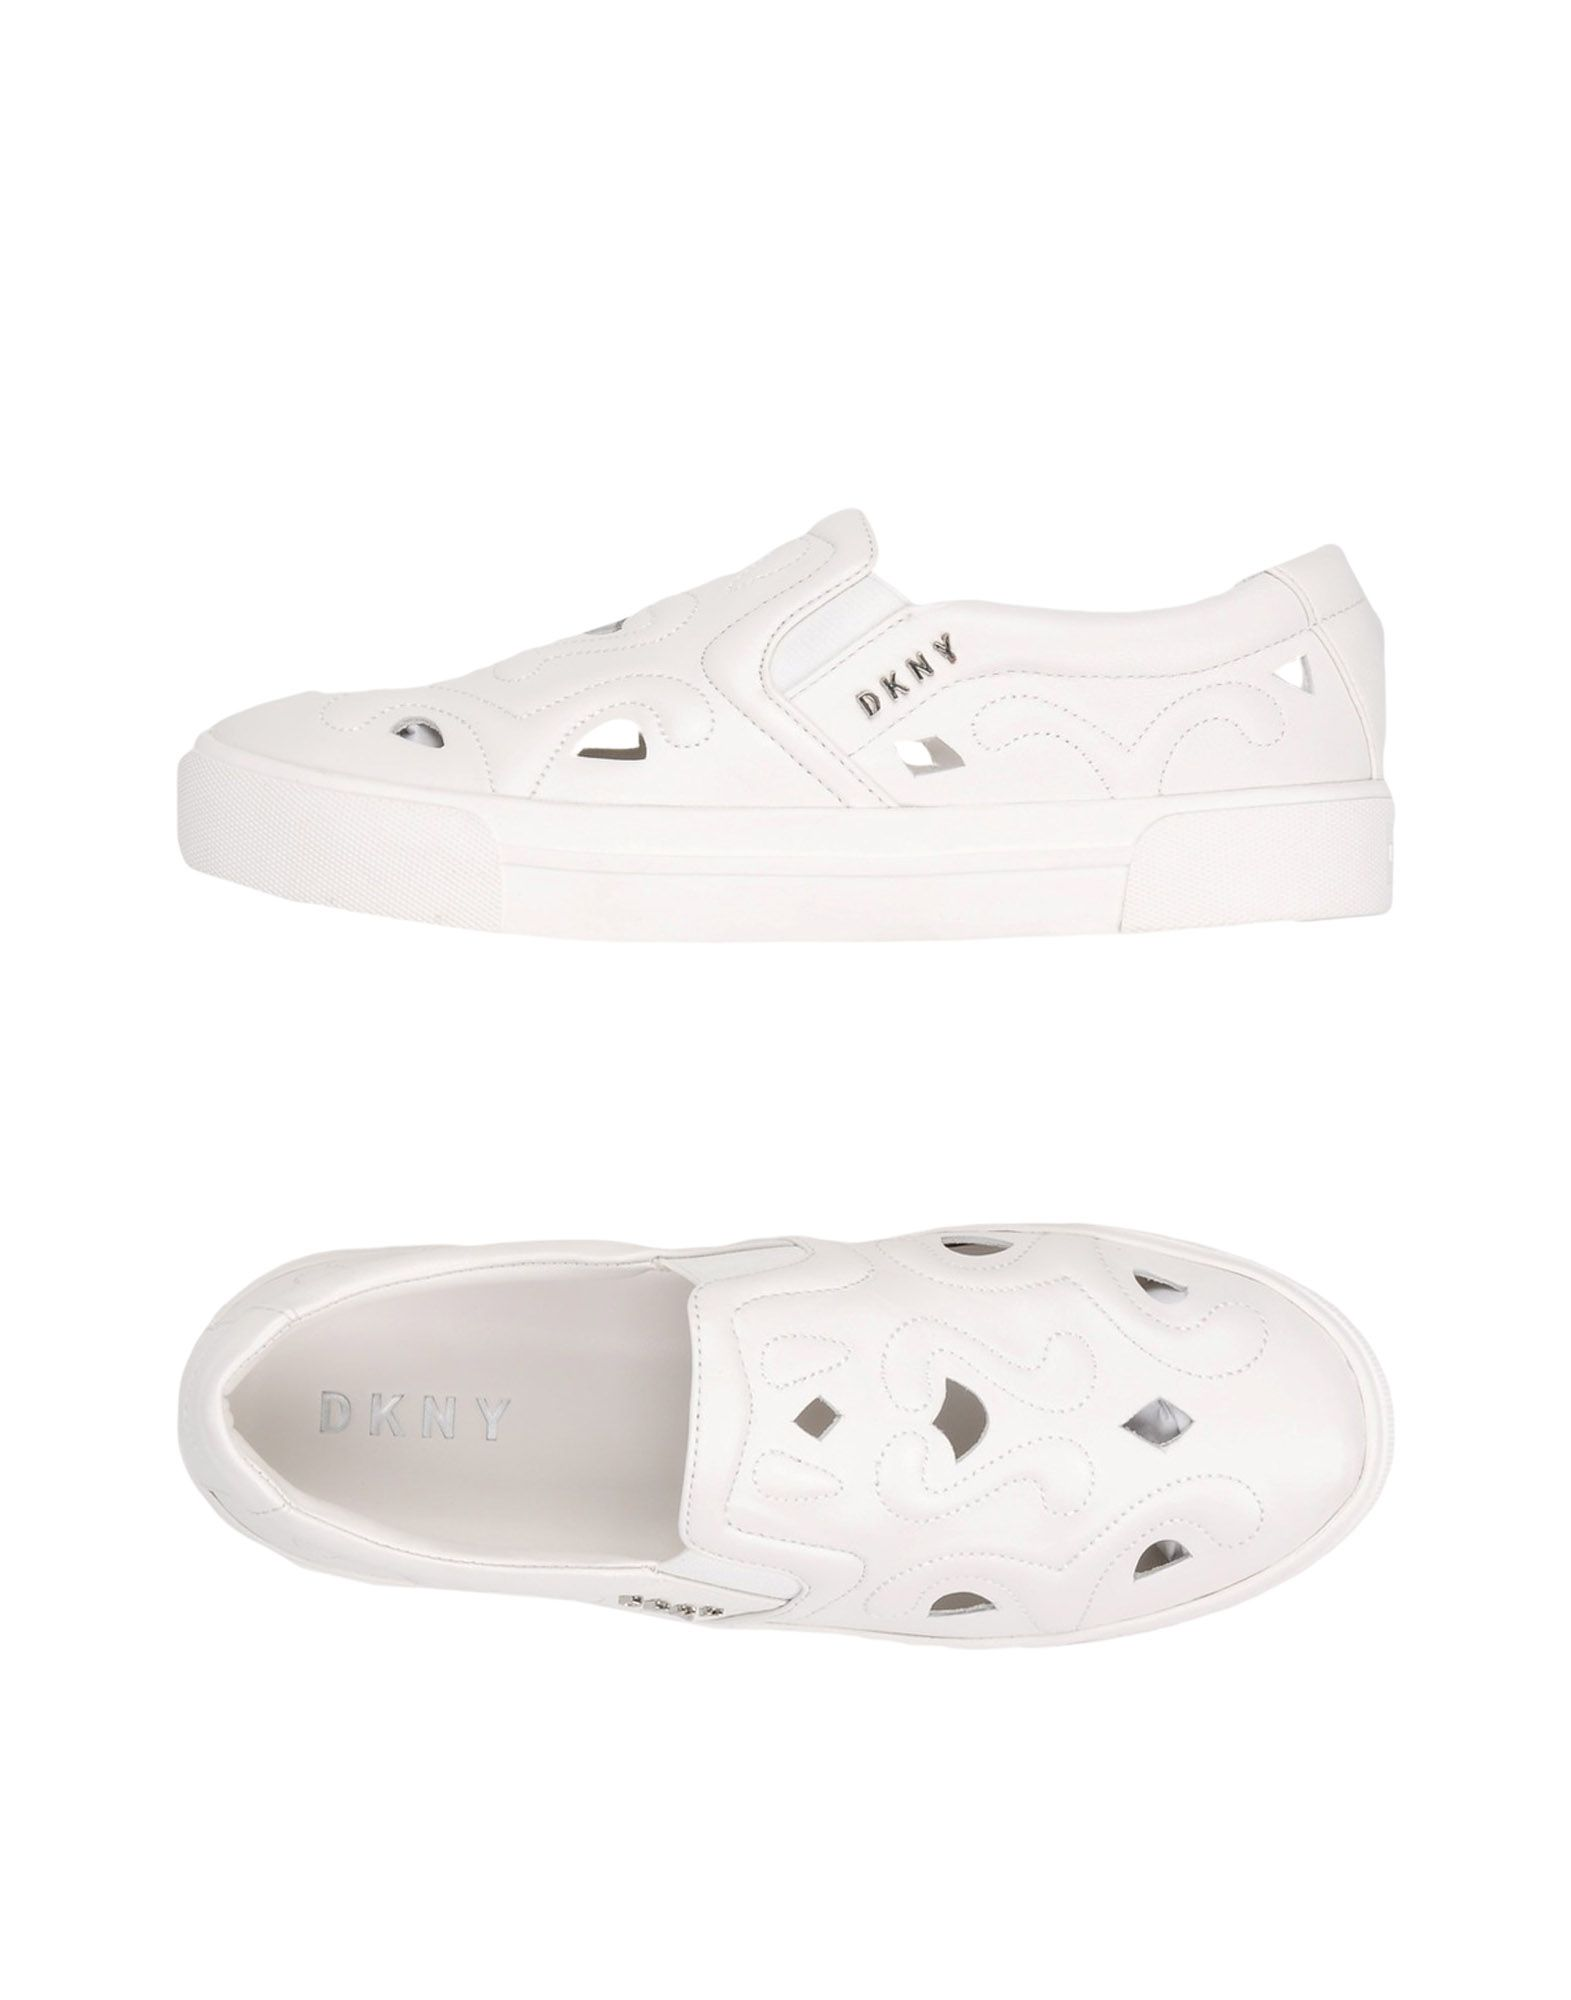 Sneakers Dkny Bess - Slip On Sneak - Femme - Sneakers Dkny sur